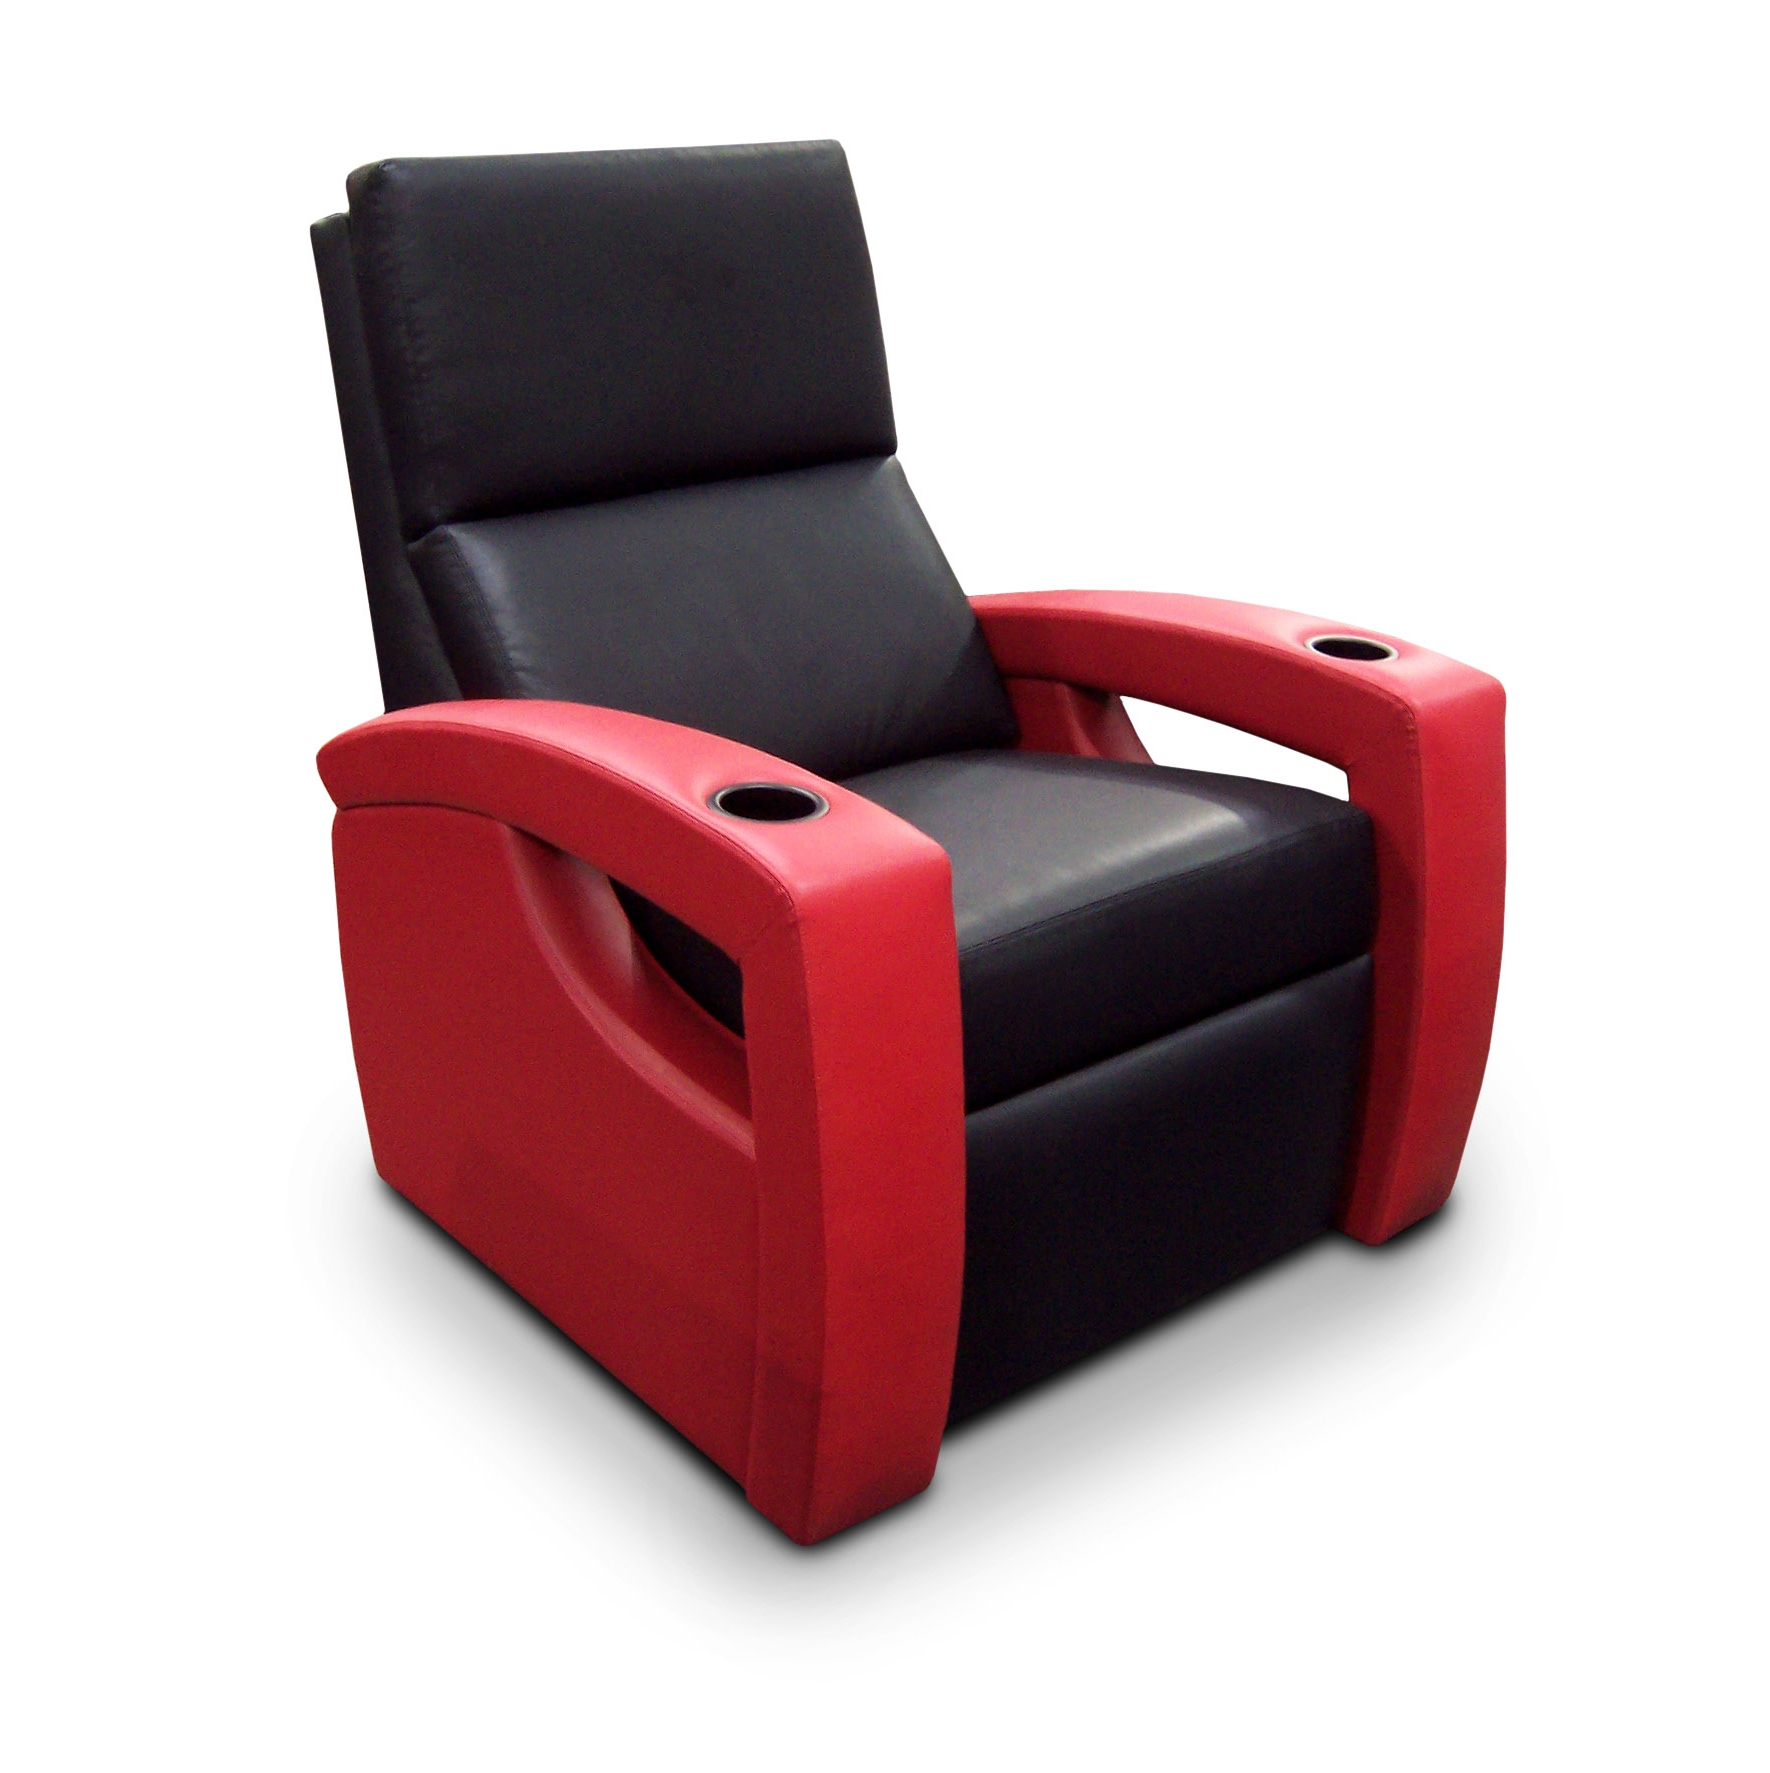 The slender back and finely crafted open arm design offers a much lighter dimension to this chic viewing chair.